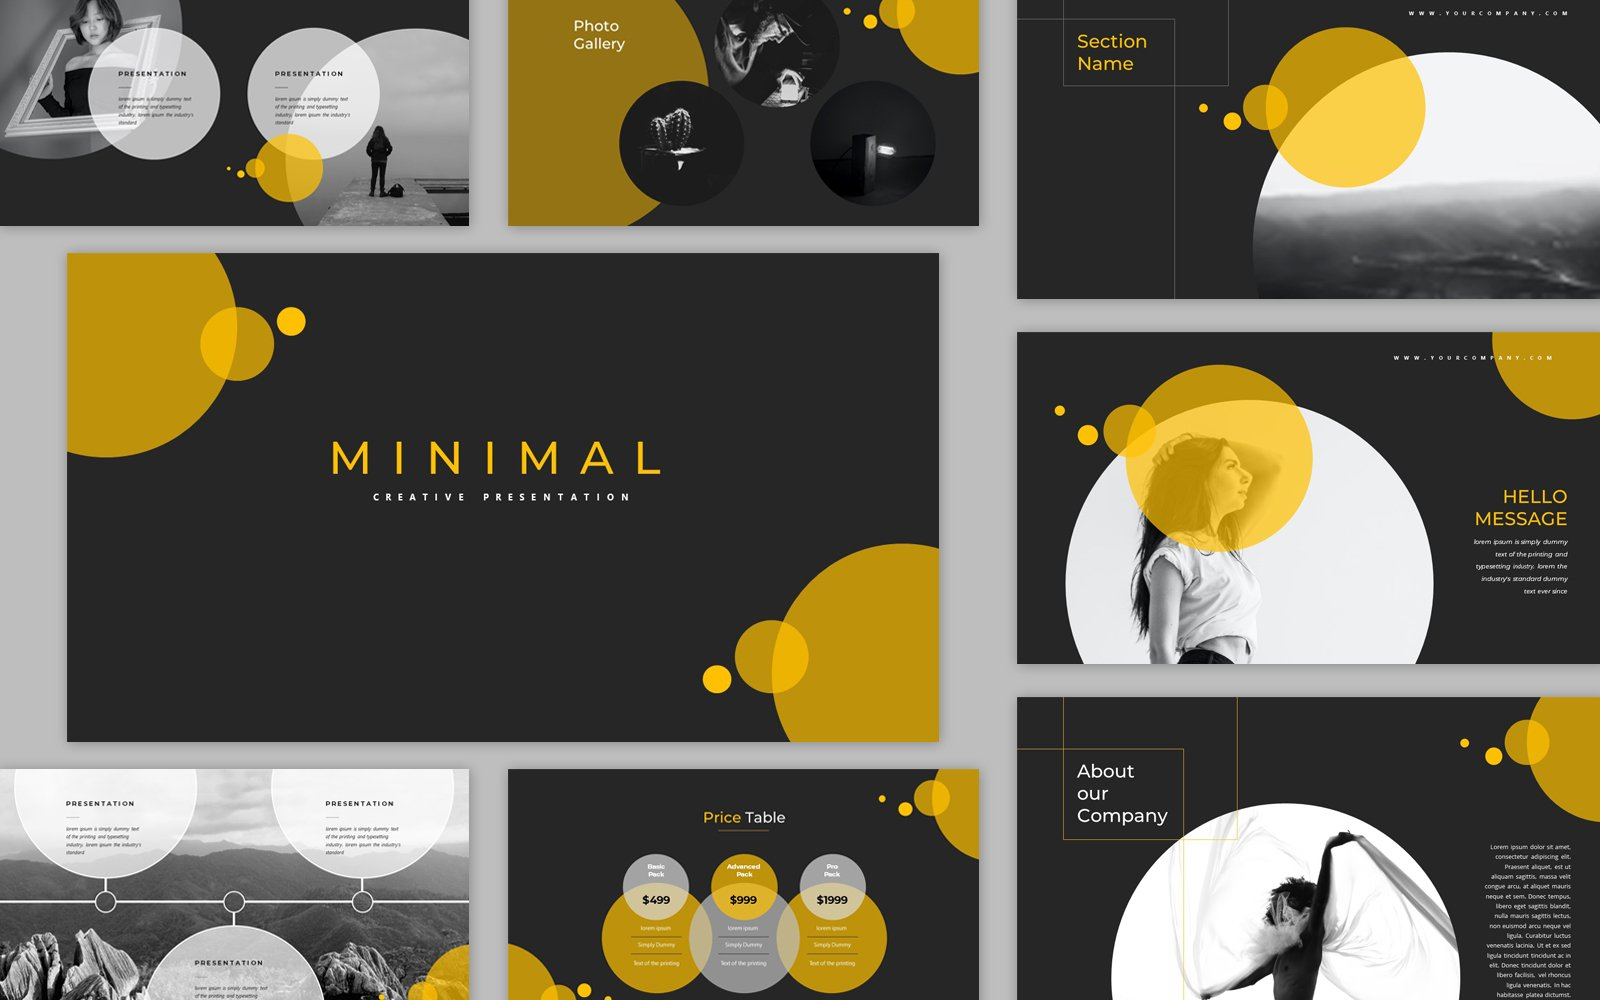 Black and Yellow Minimal Creative Presentation PowerPoint Template for Business